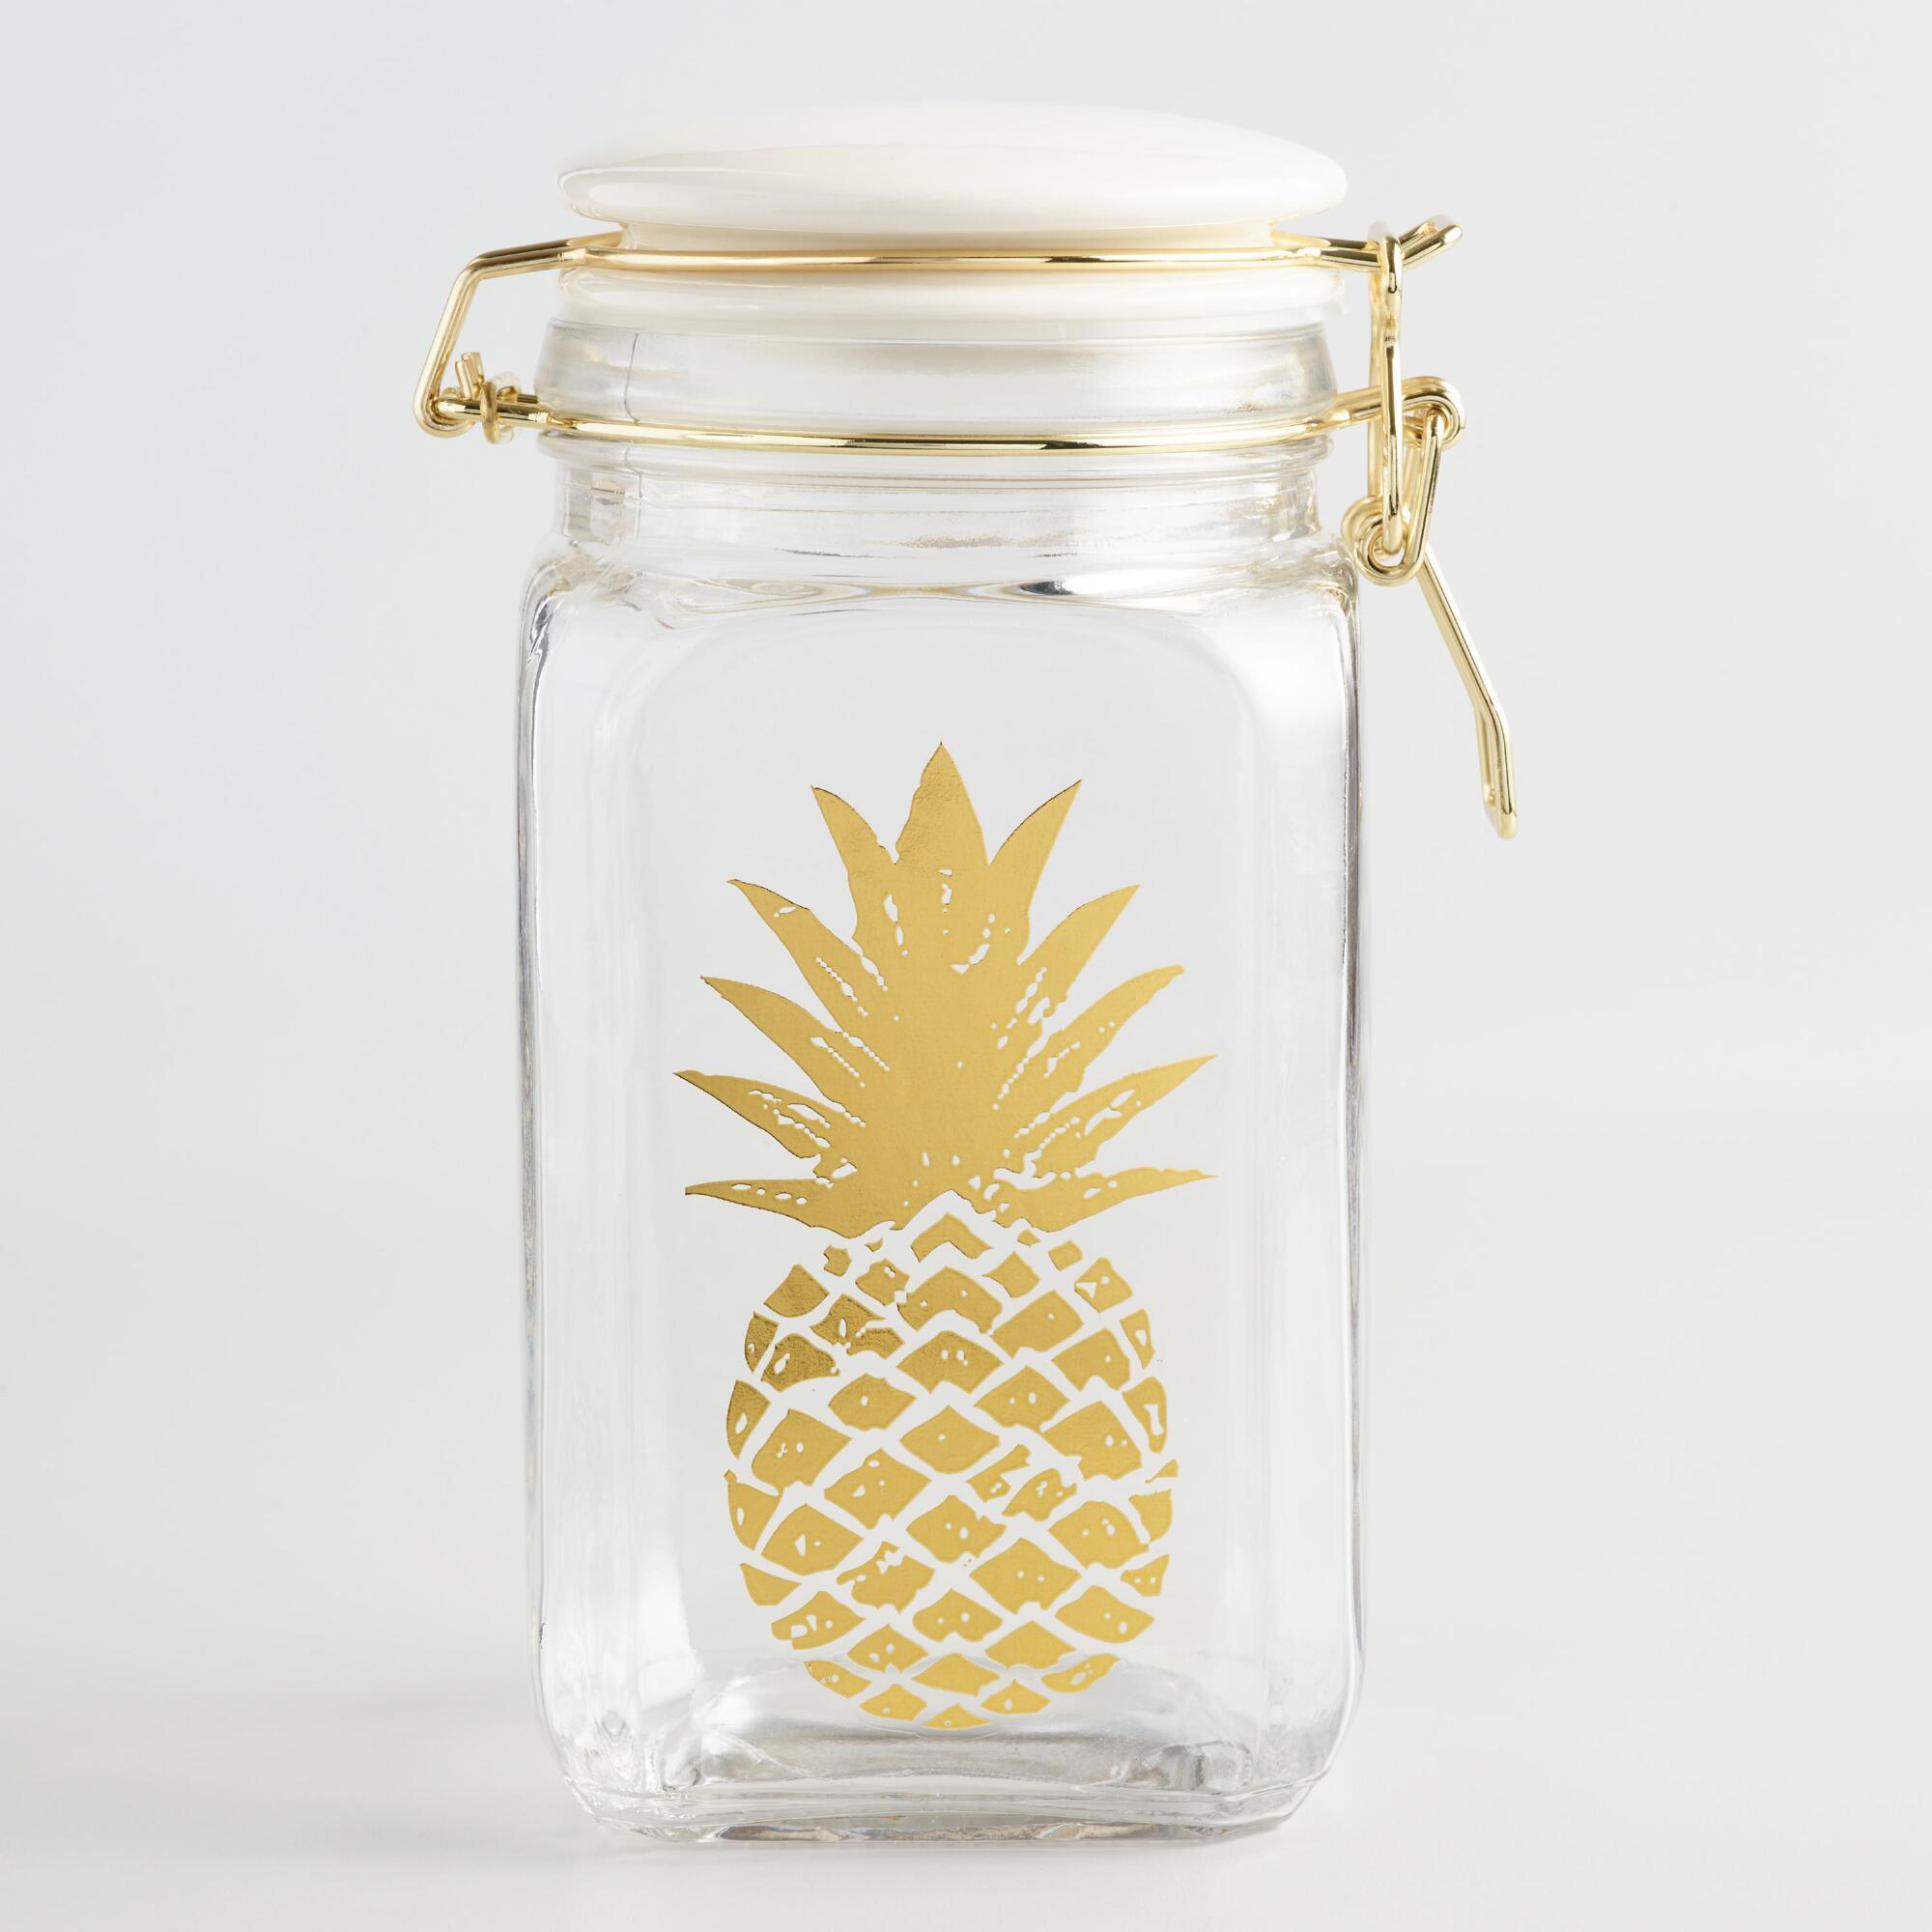 Pineapple Glass Jar with White Ceramic Clamp Lid by World Market